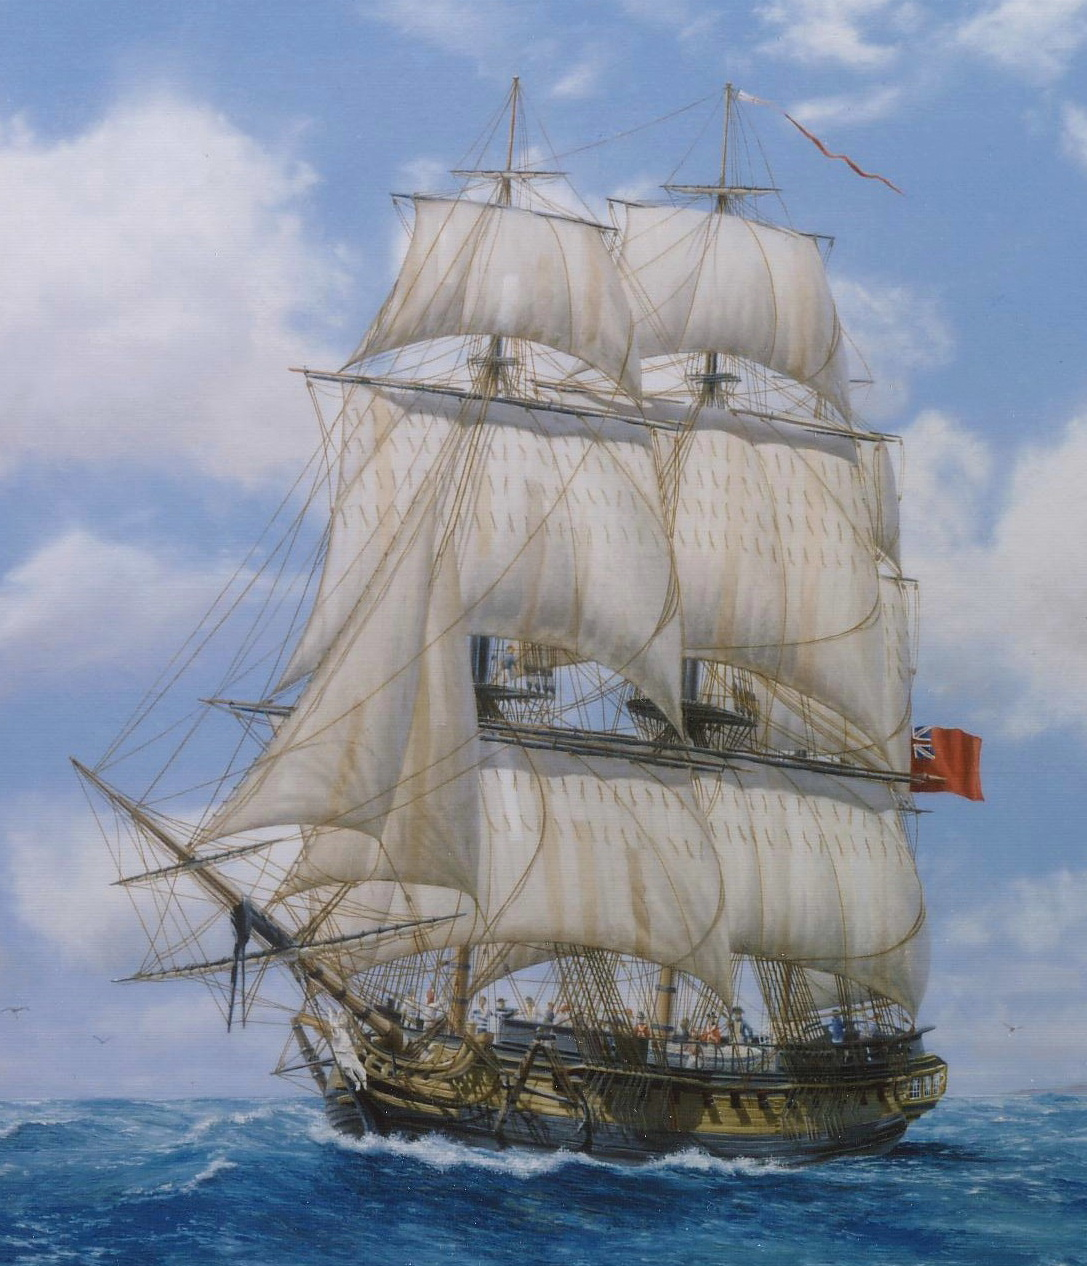 HMS Melampus (1785) - Wikipedia